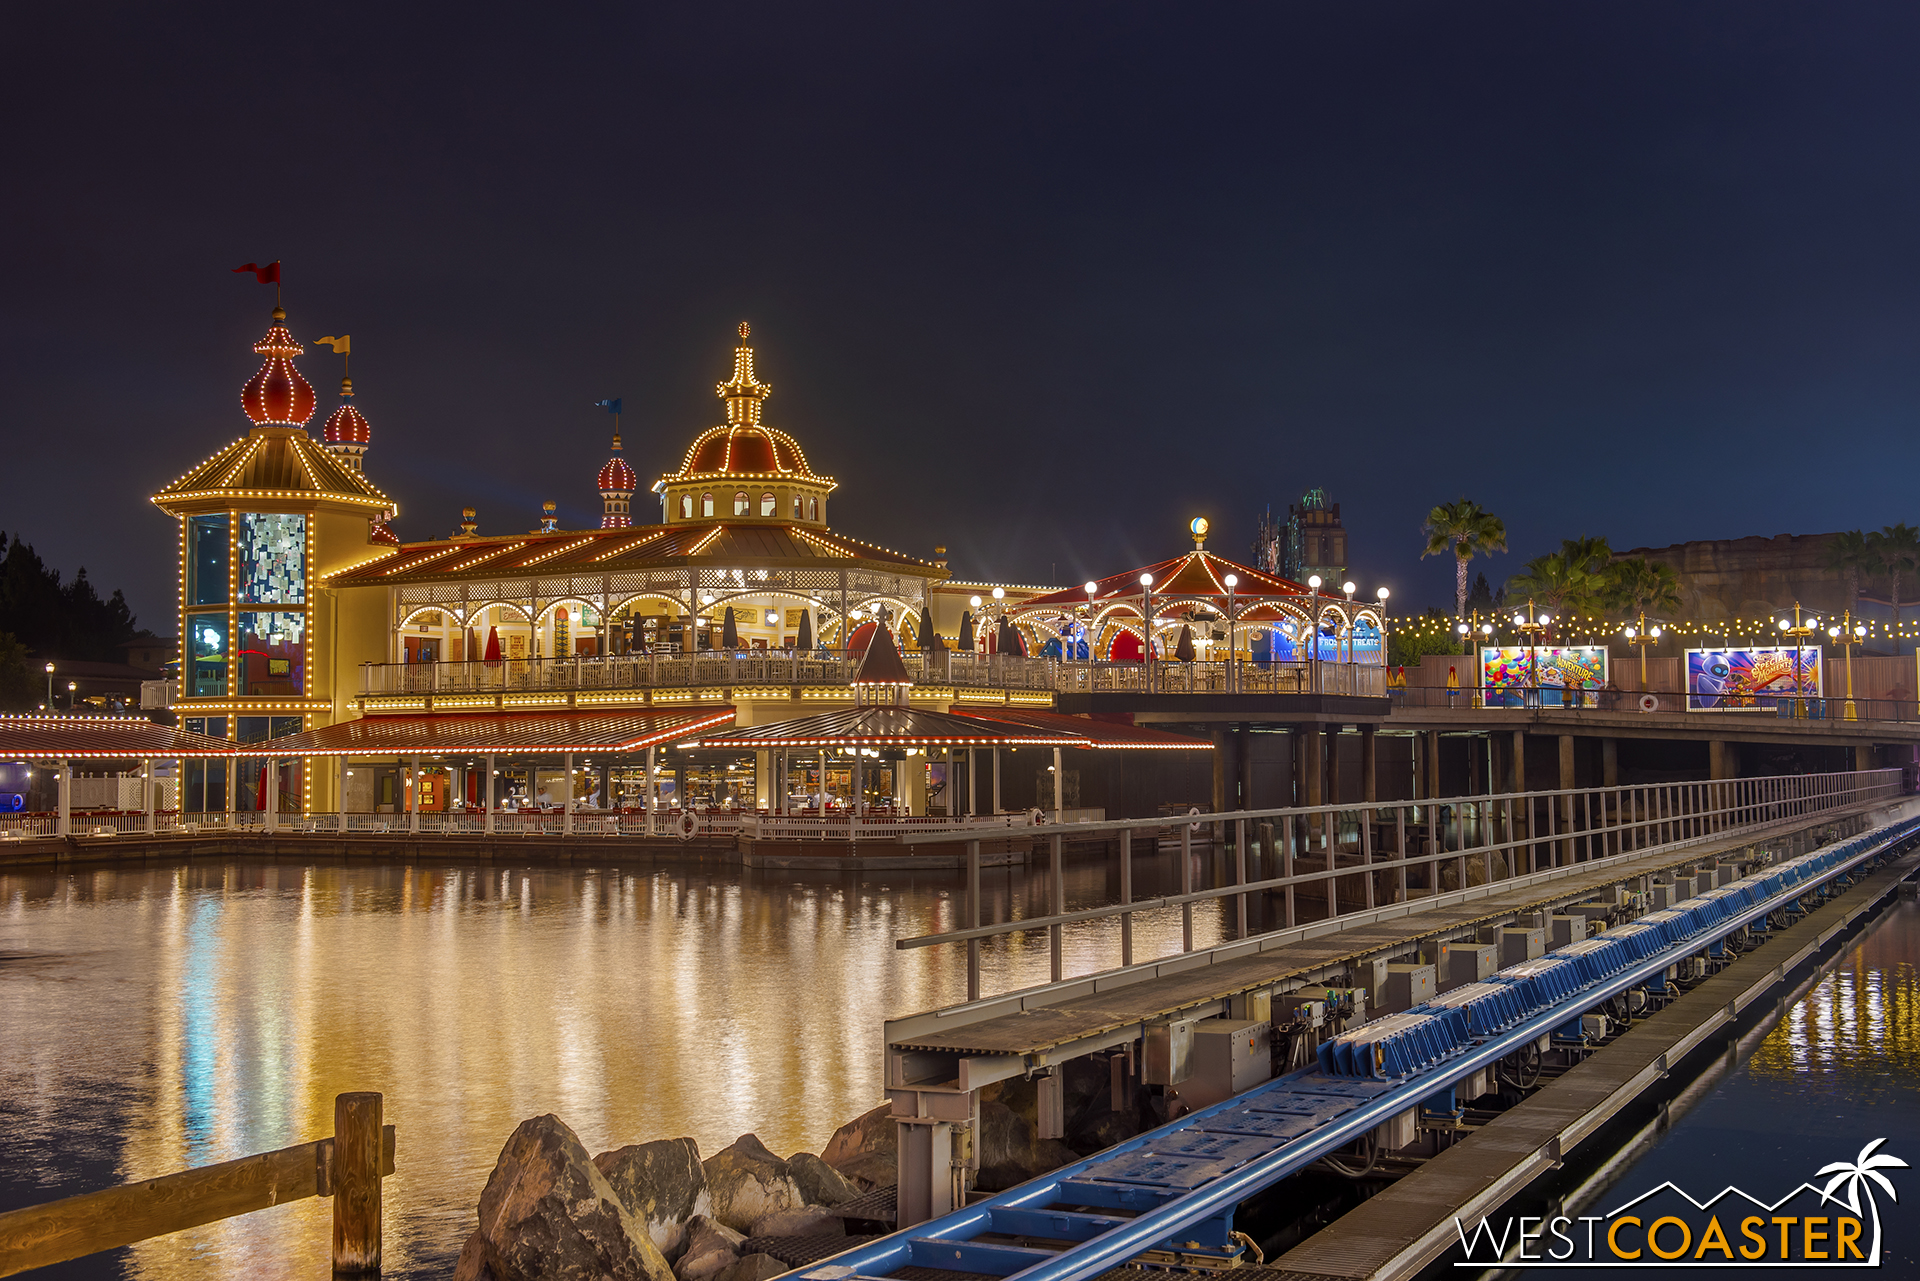 At night, the water effect is light up in red as the roller coaster train launches.